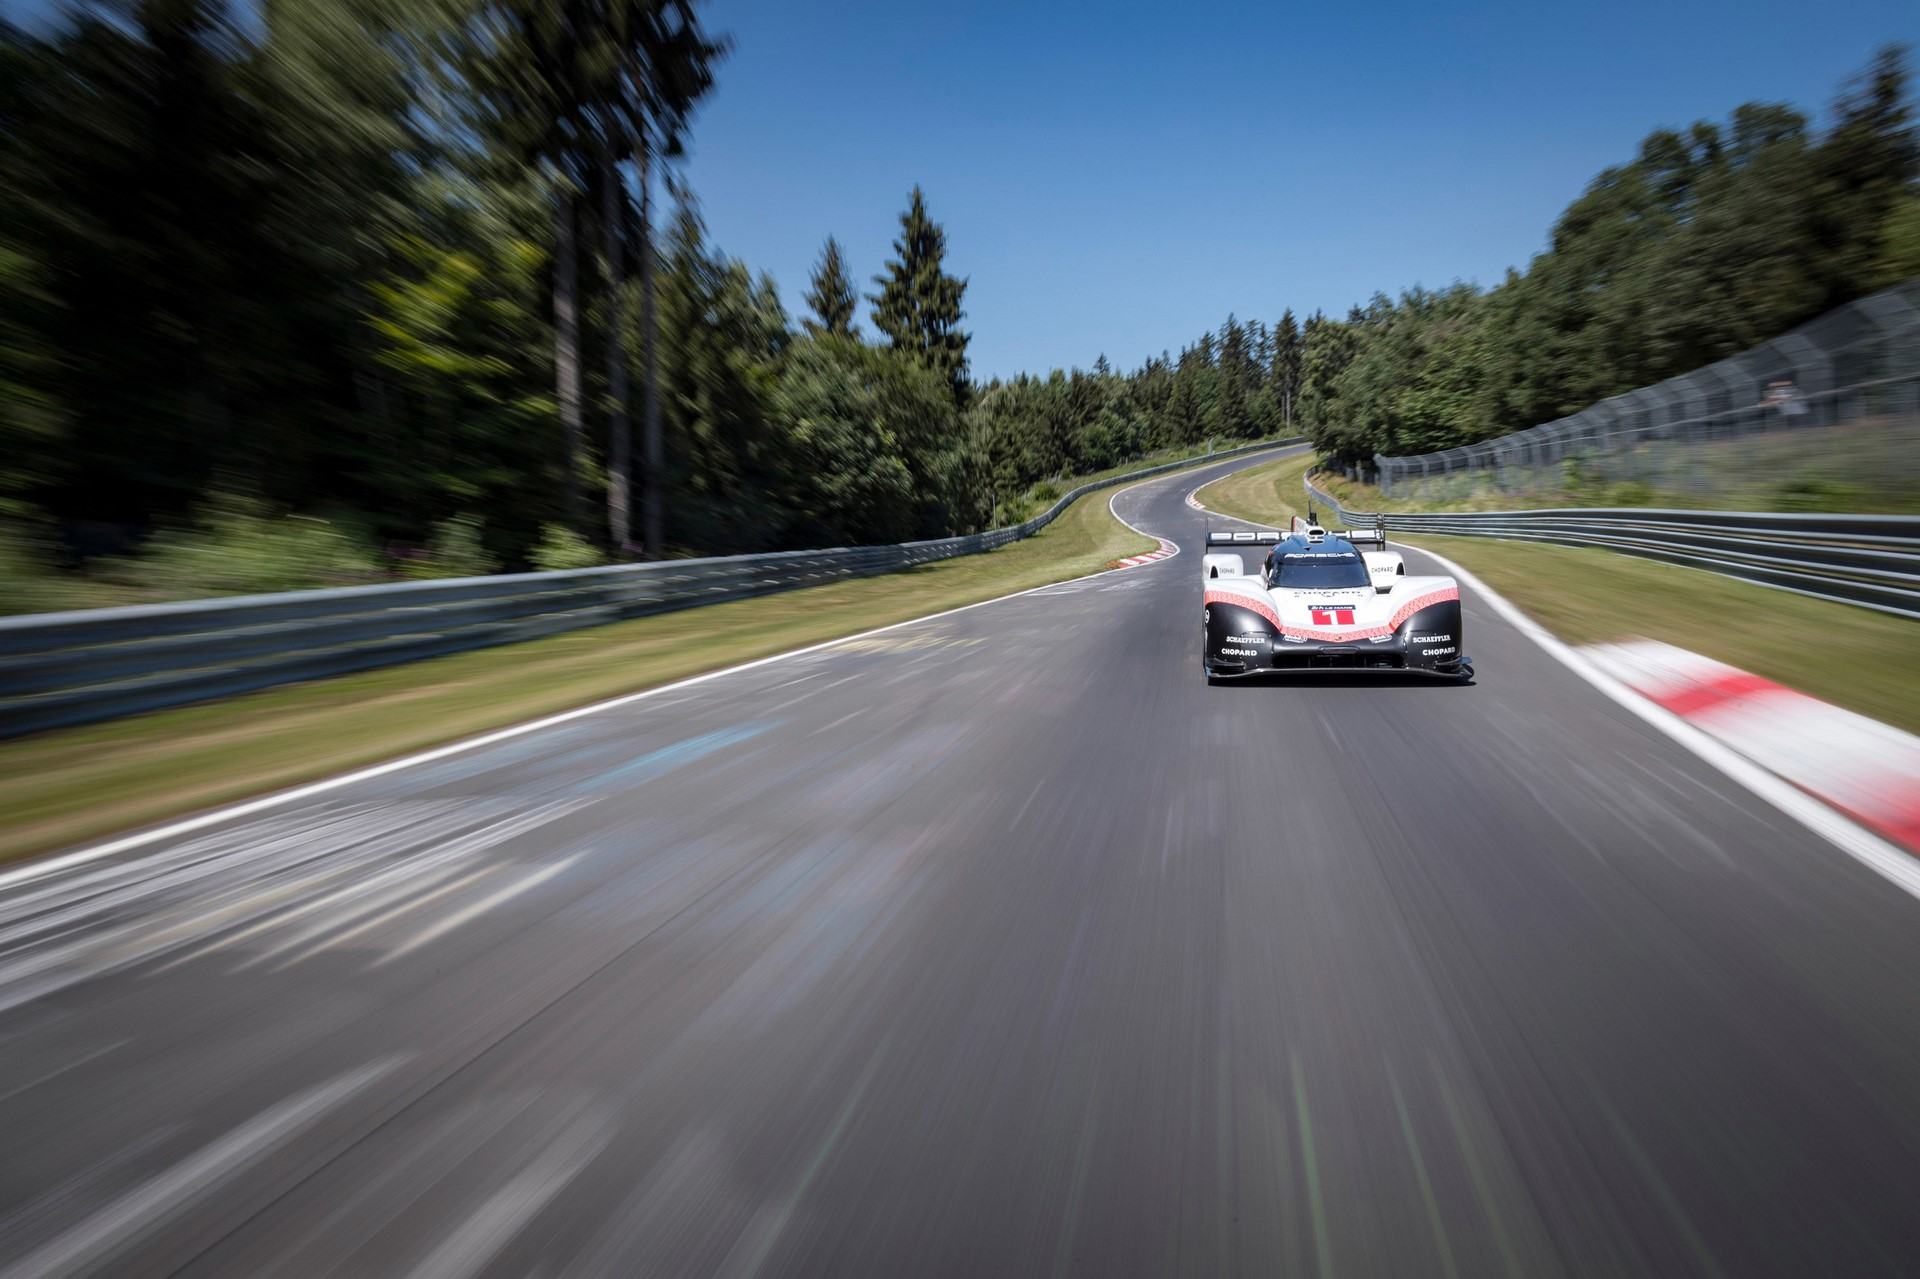 porsche-919-ring-lap-record-007-1